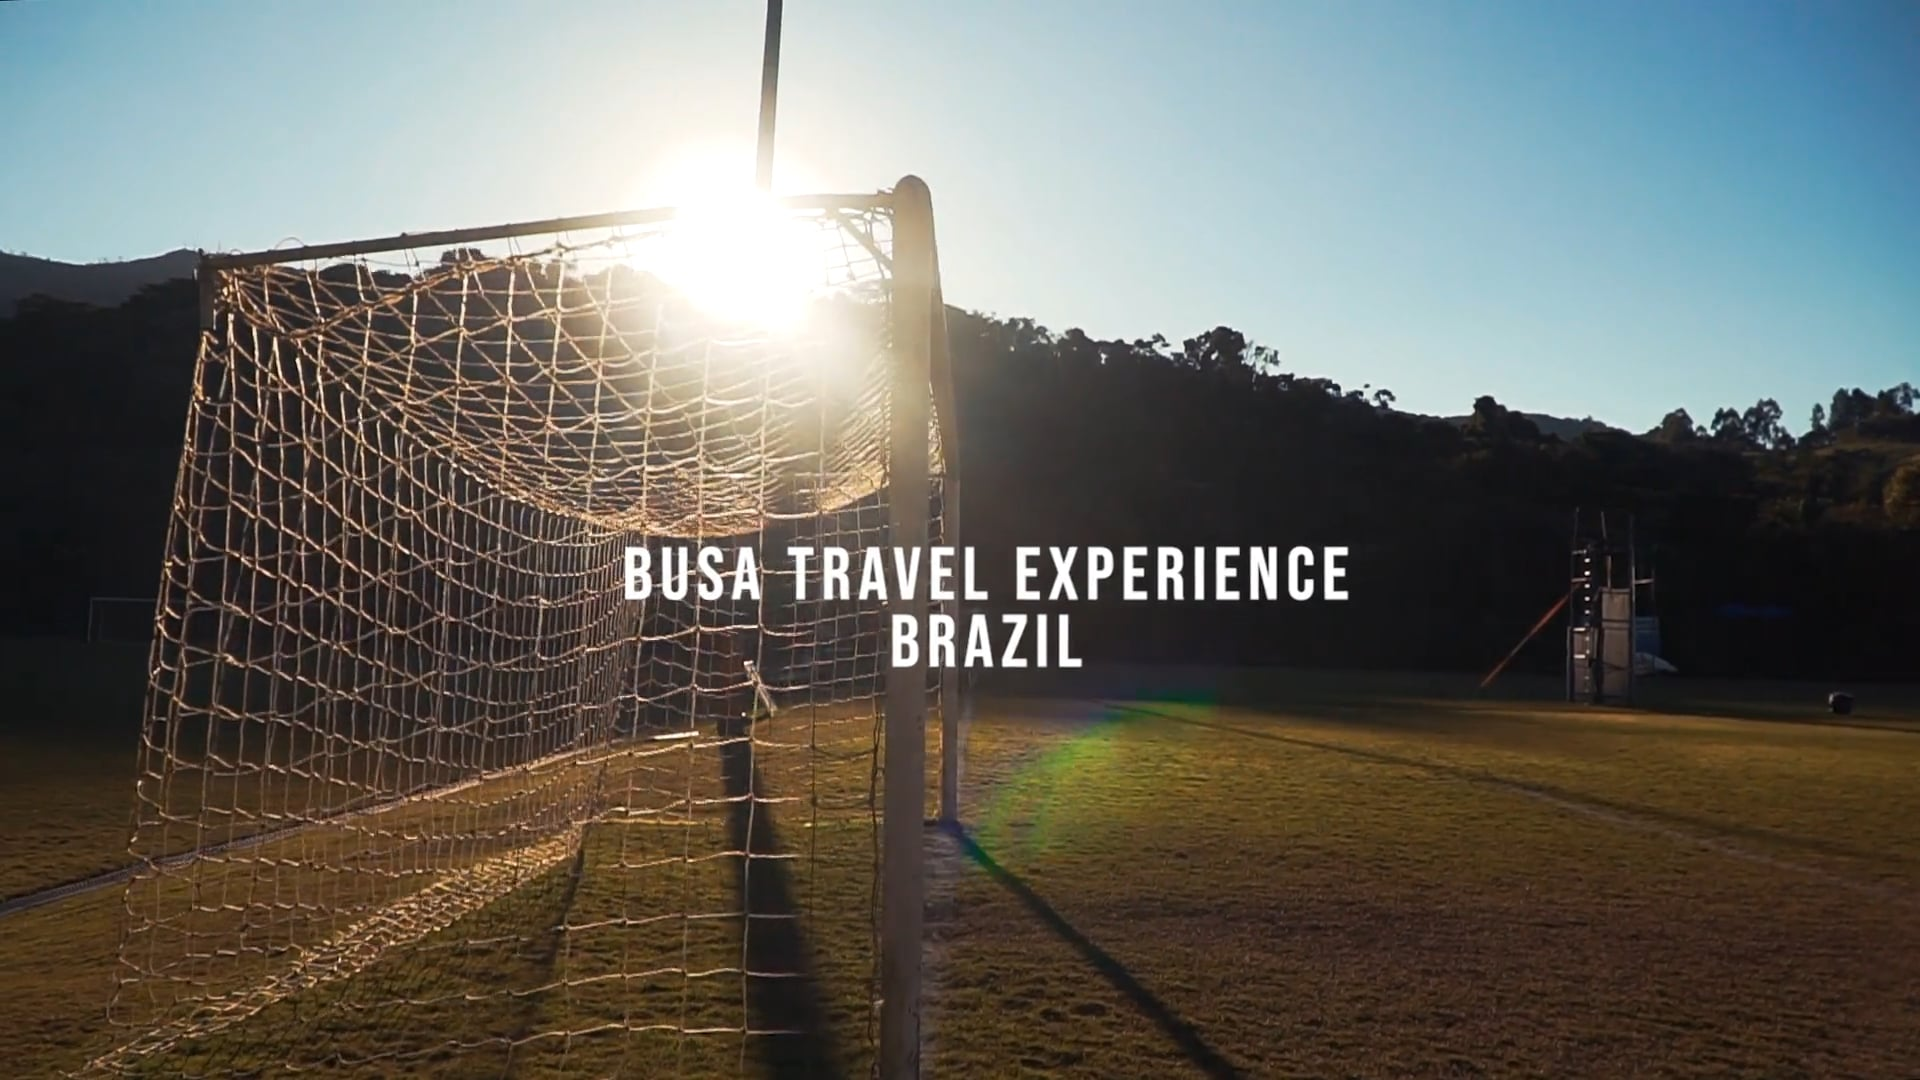 BUSA TRAVEL EXPERIENCE